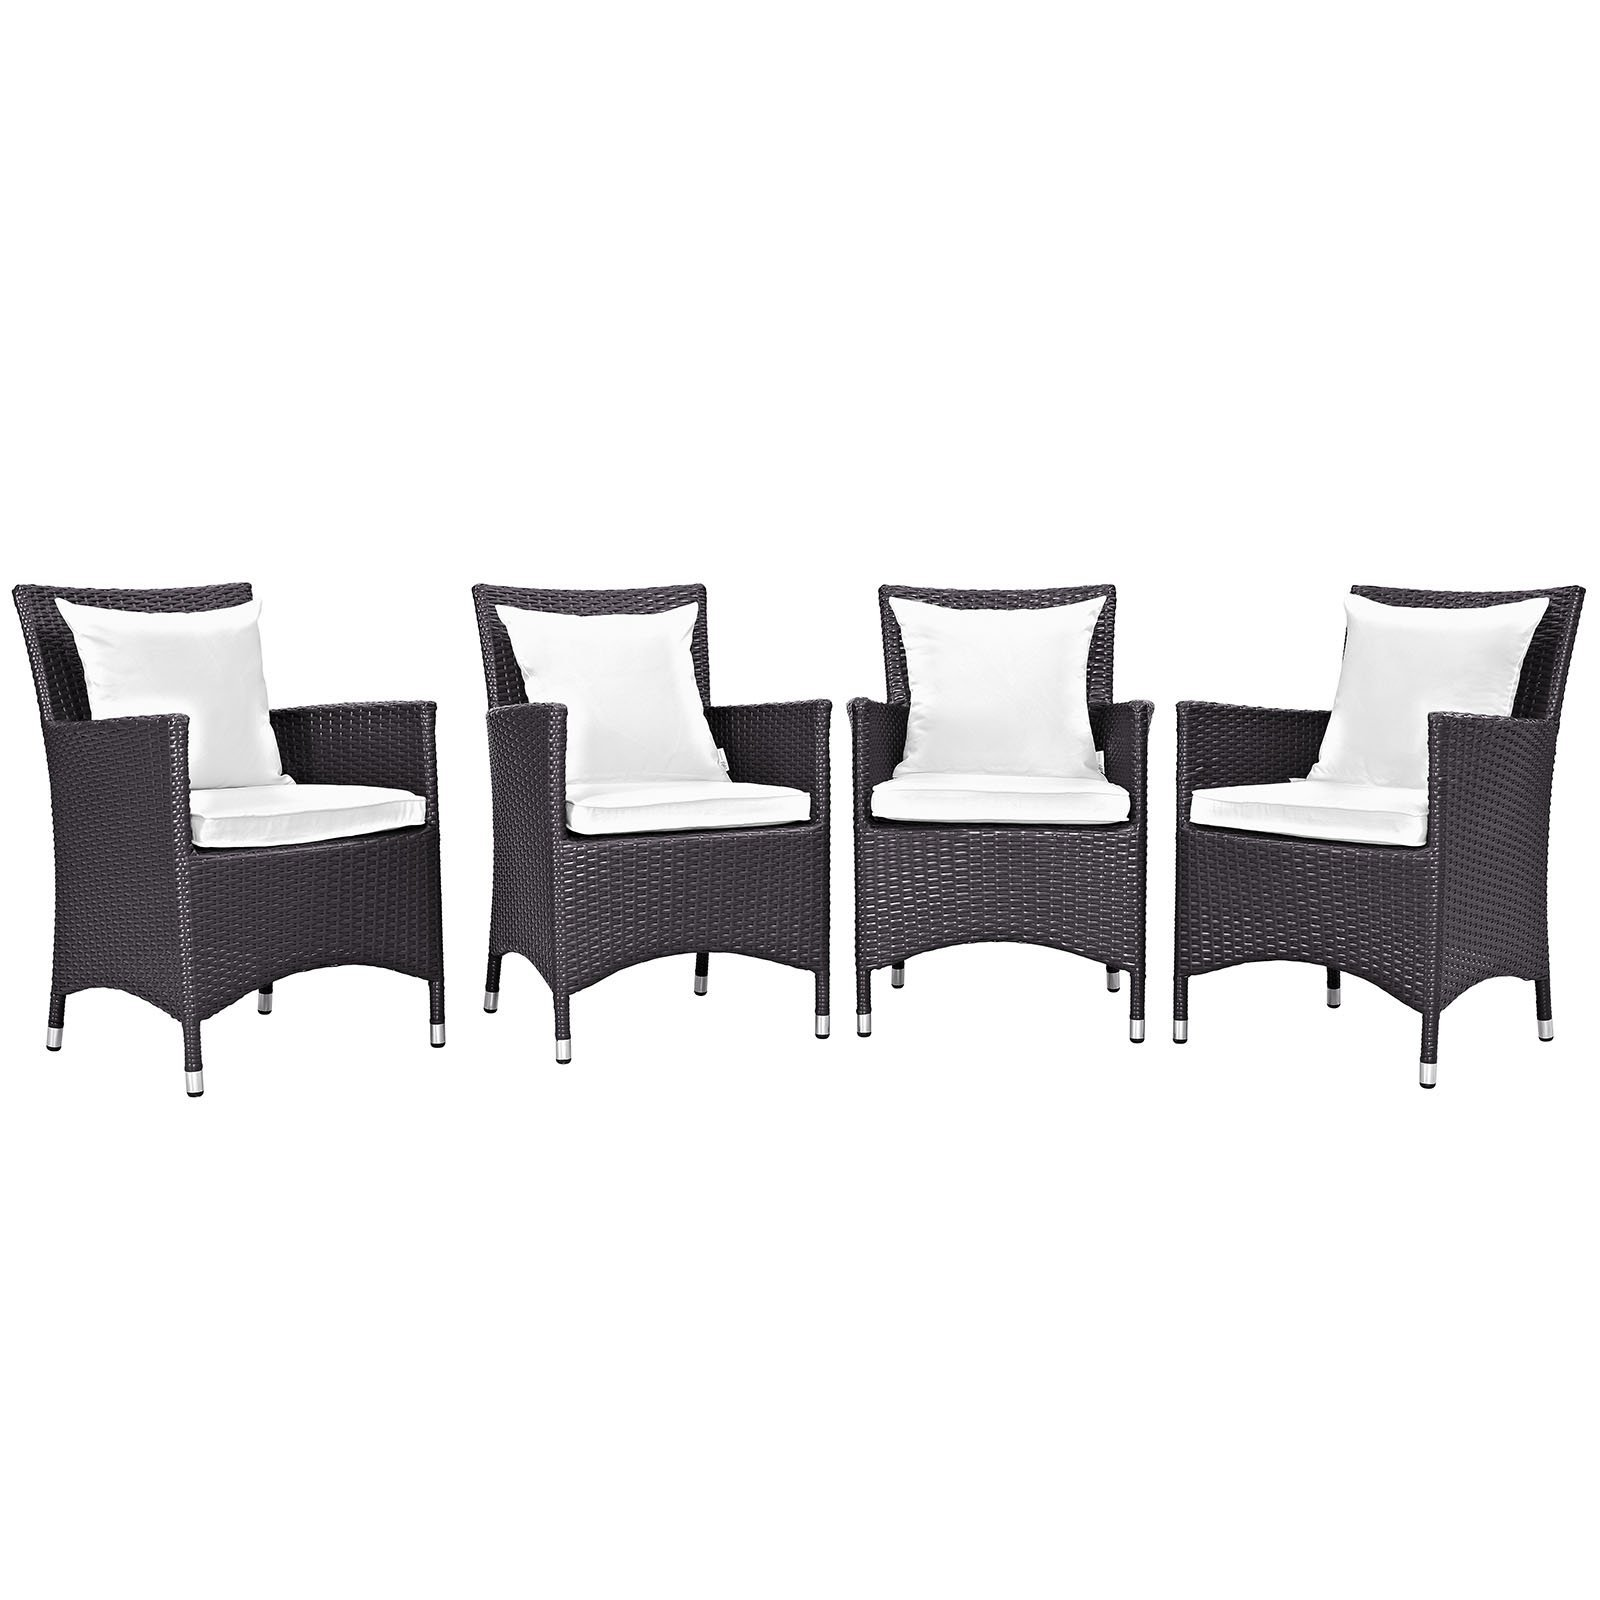 Convene 4 Piece Outdoor Patio Dining Set Espresso White EEI-2190-EXP-WHI-SET